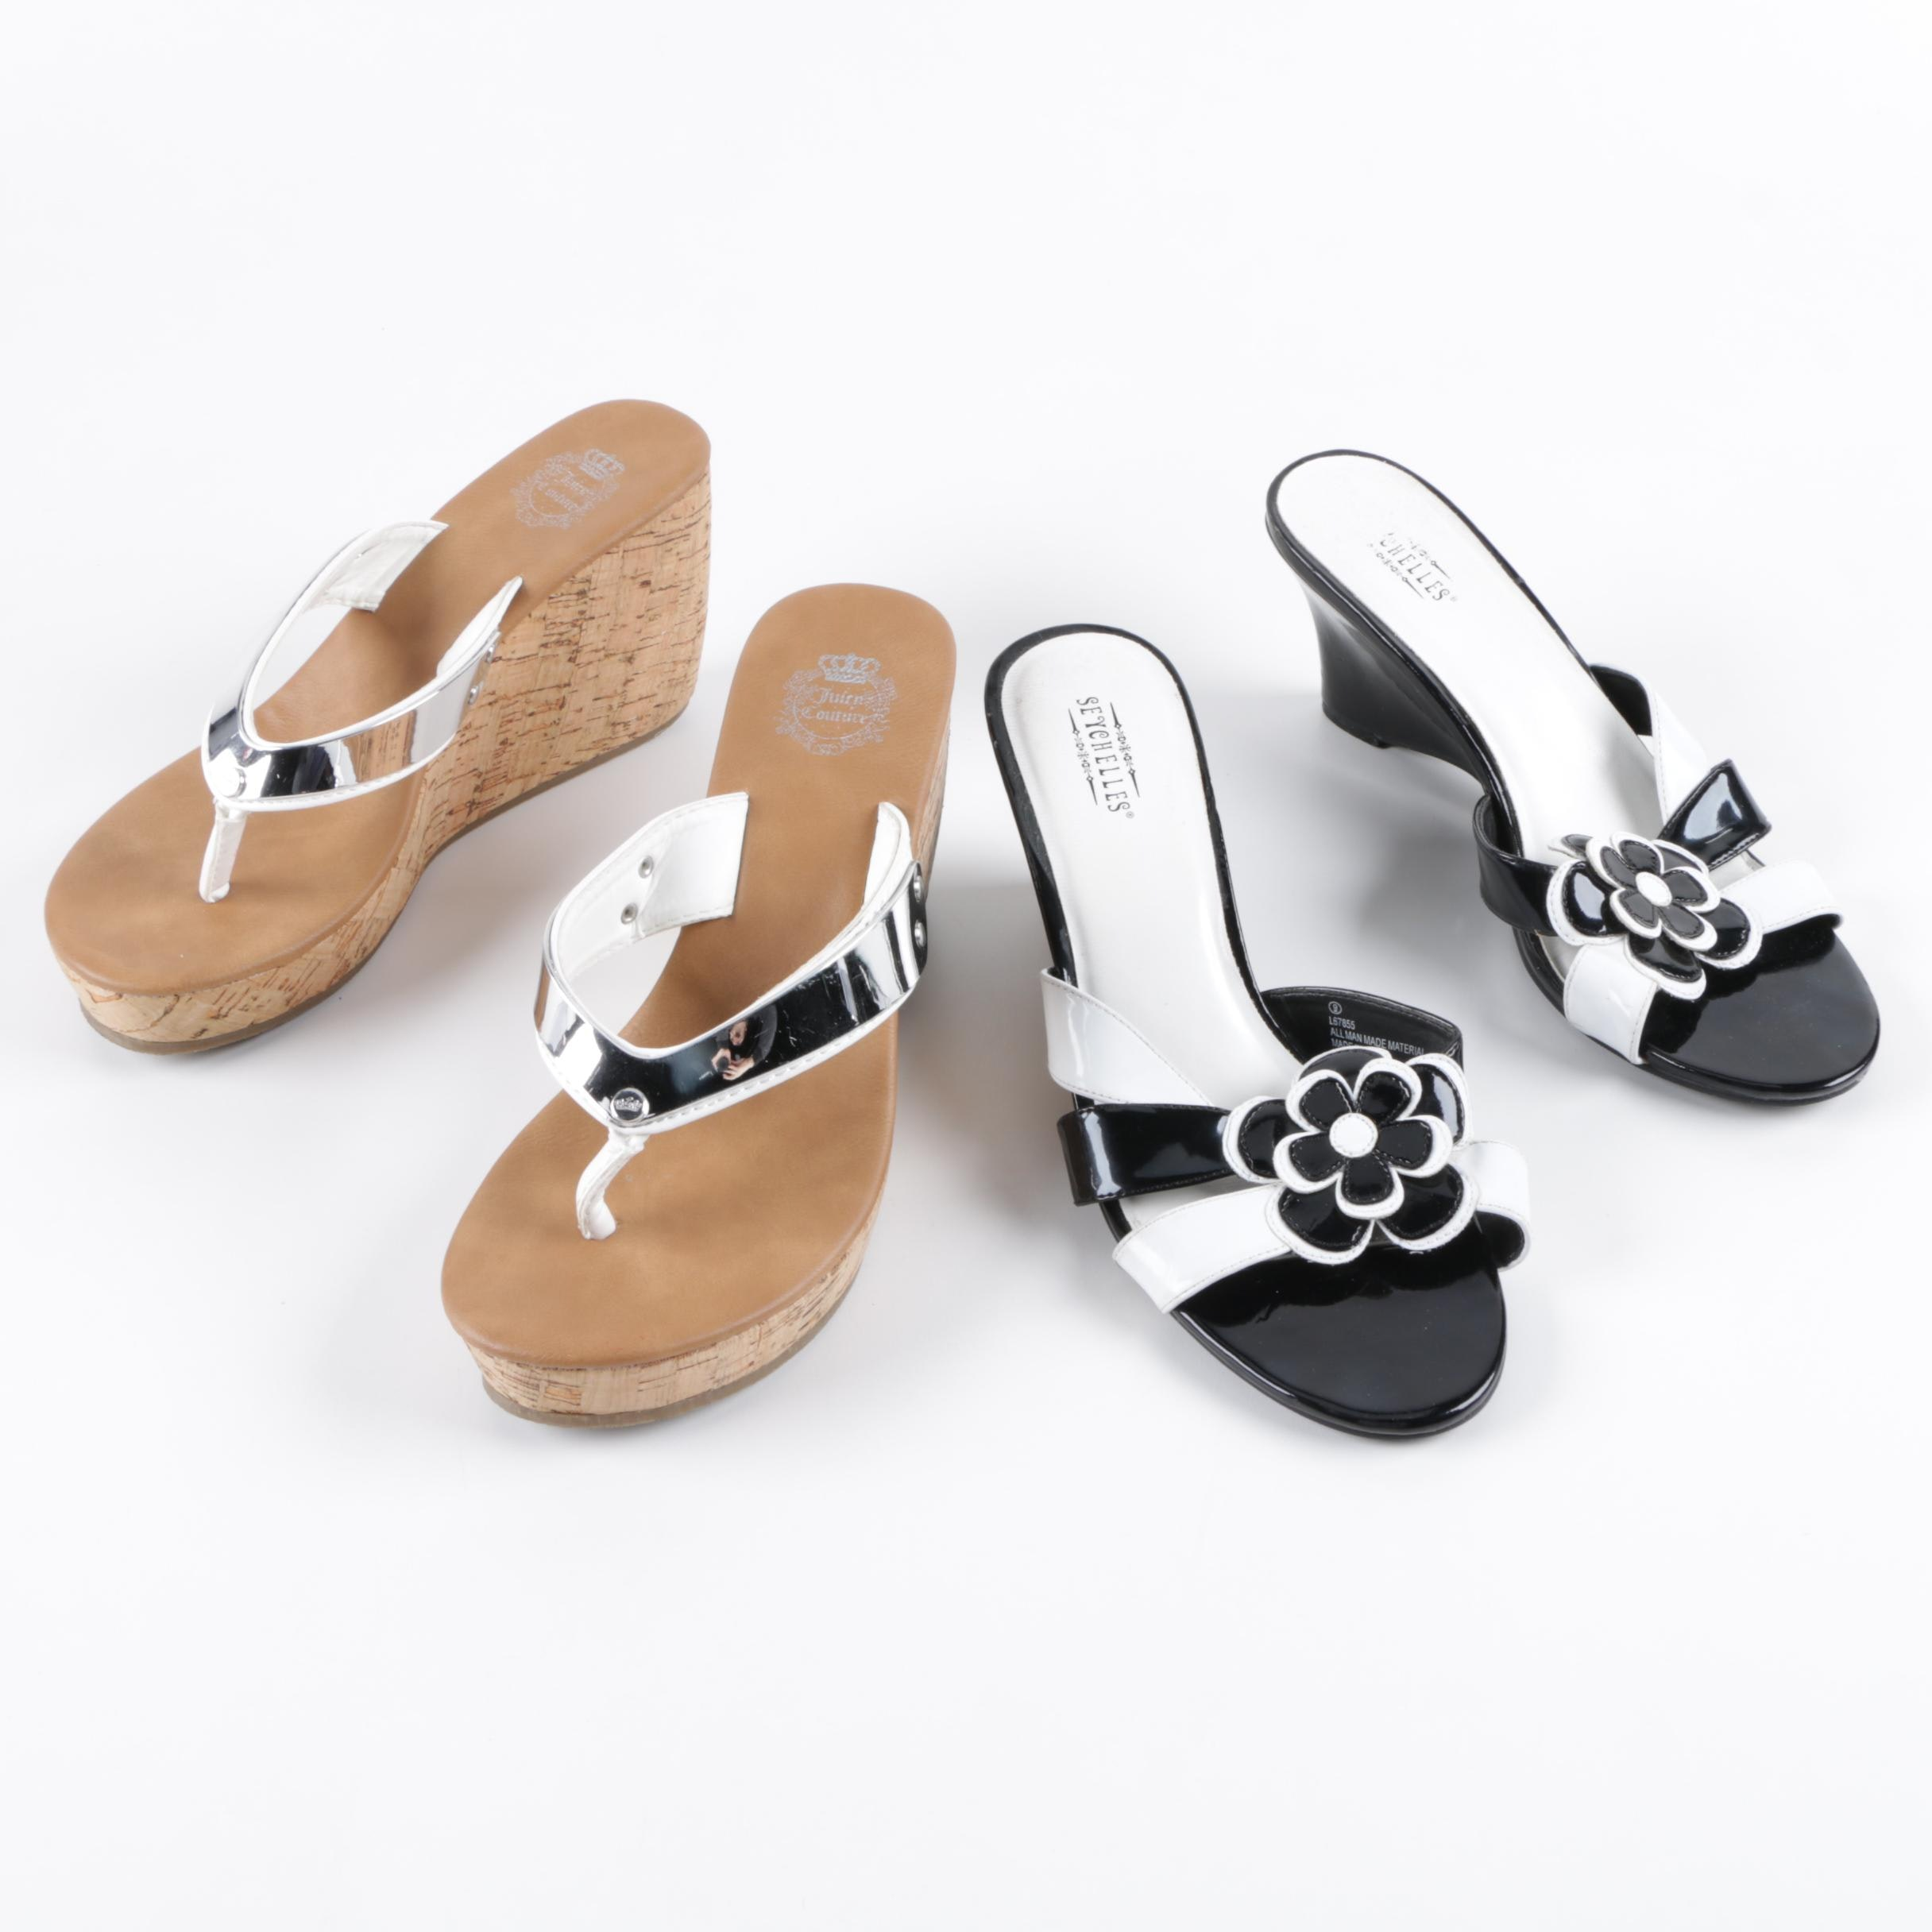 Juicy Couture and Seychelles Wedges